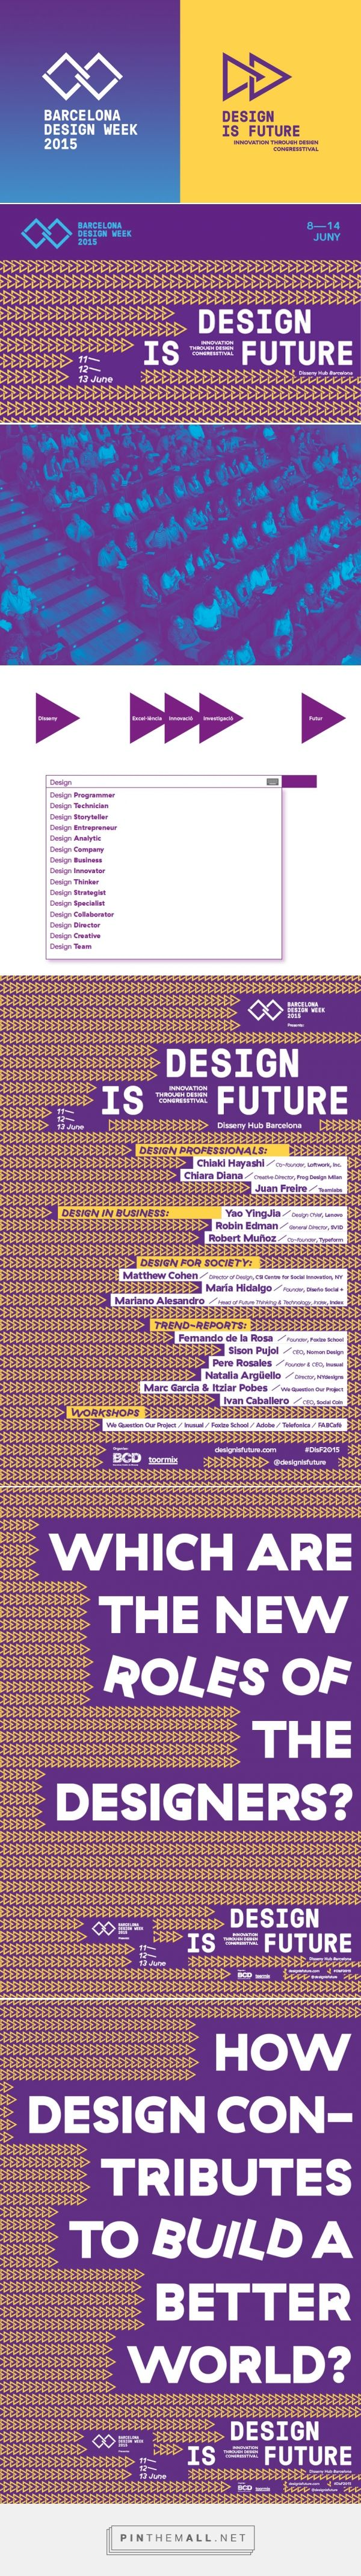 Design is Future. Lo mejor de un congreso y un festival - created via http://pinthemall.net